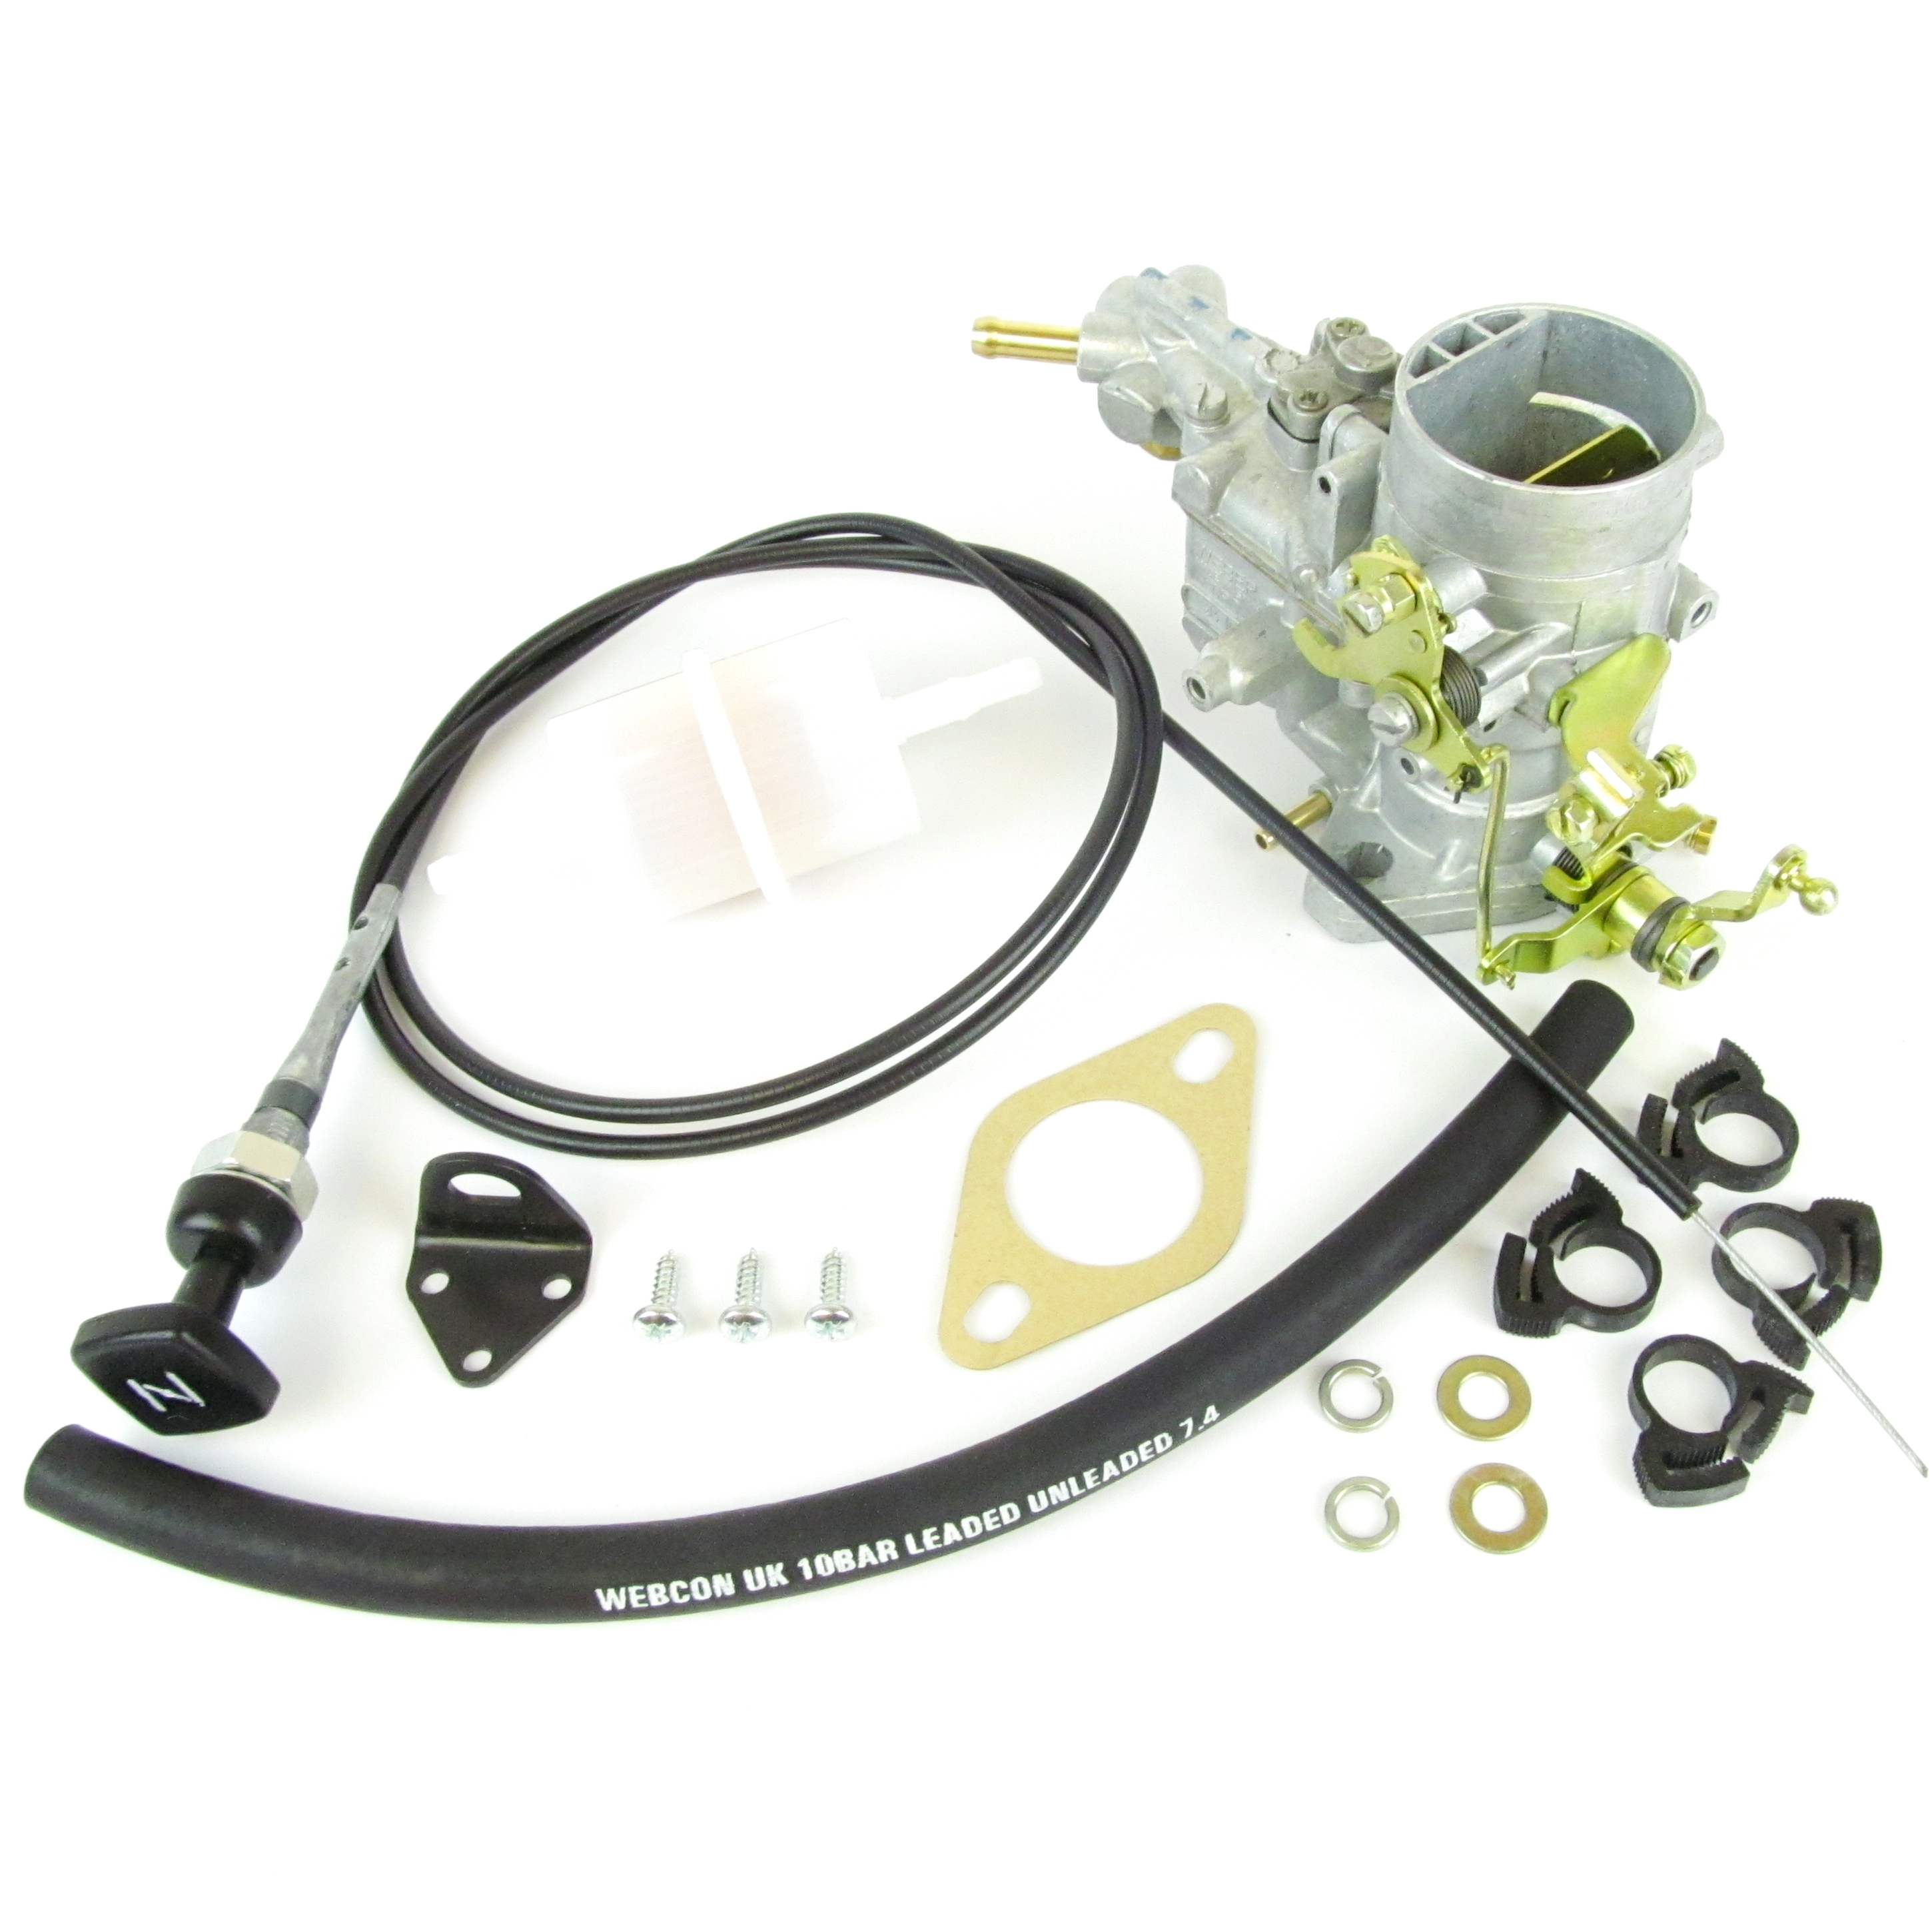 WEBER 34 ICH CARBURETTOR/CARB UPGRADE KIT SAAB 95/96 V4 1498CC FORD TAUNUS ENGINE